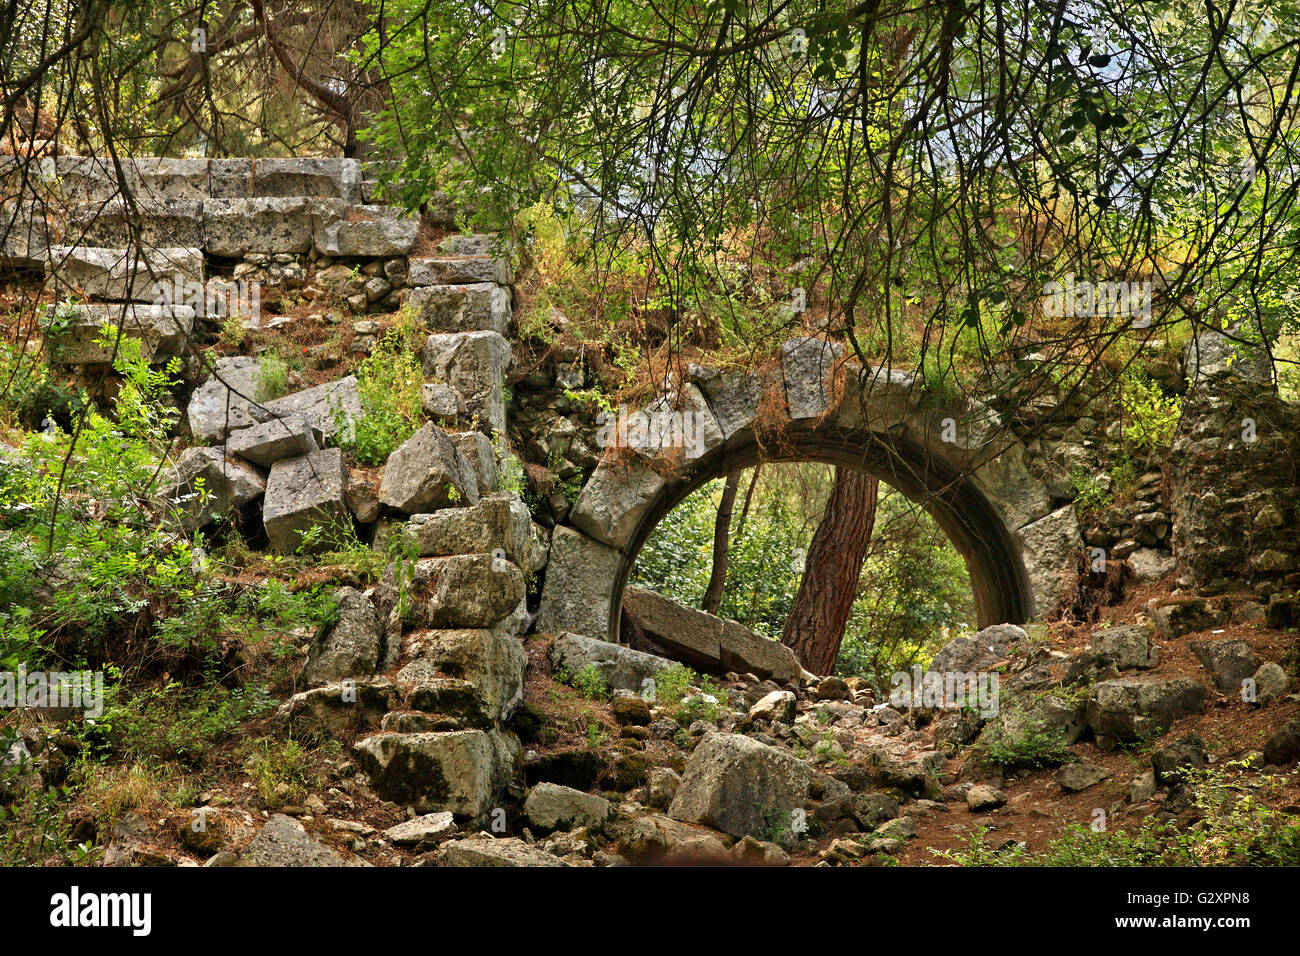 Ruins of an ancient theater at the archaeological site of Olympos, Lycia, Antalya province, Turkey. - Stock Image